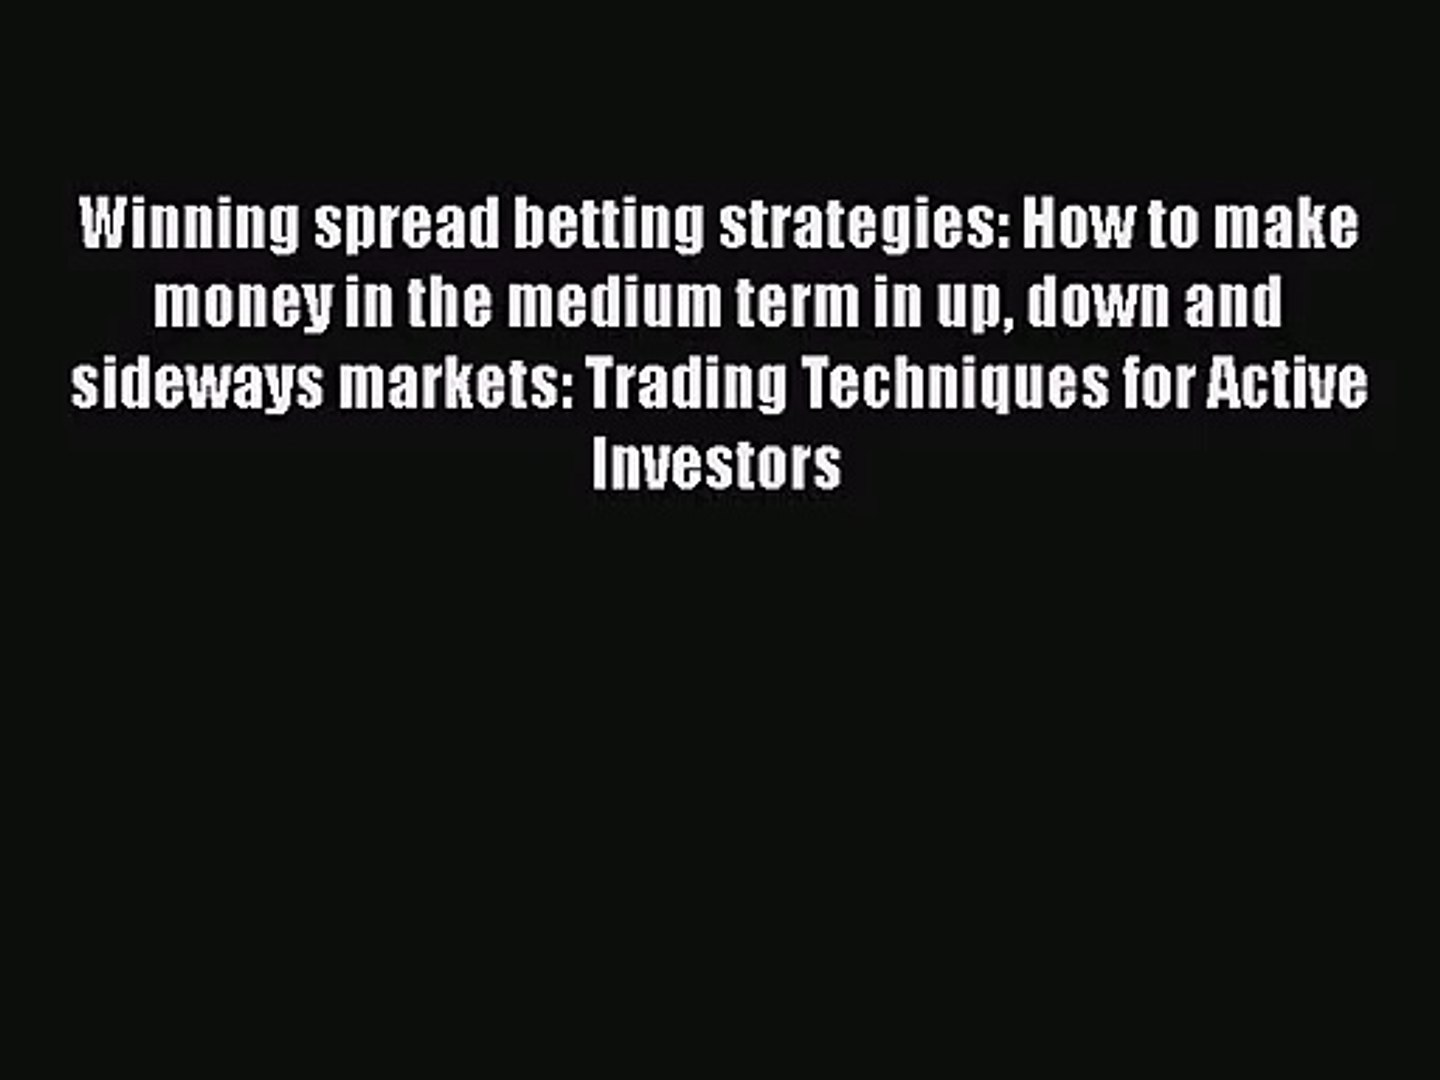 Winning spread betting strategies pdf download kerber vs suarez navarro betting expert